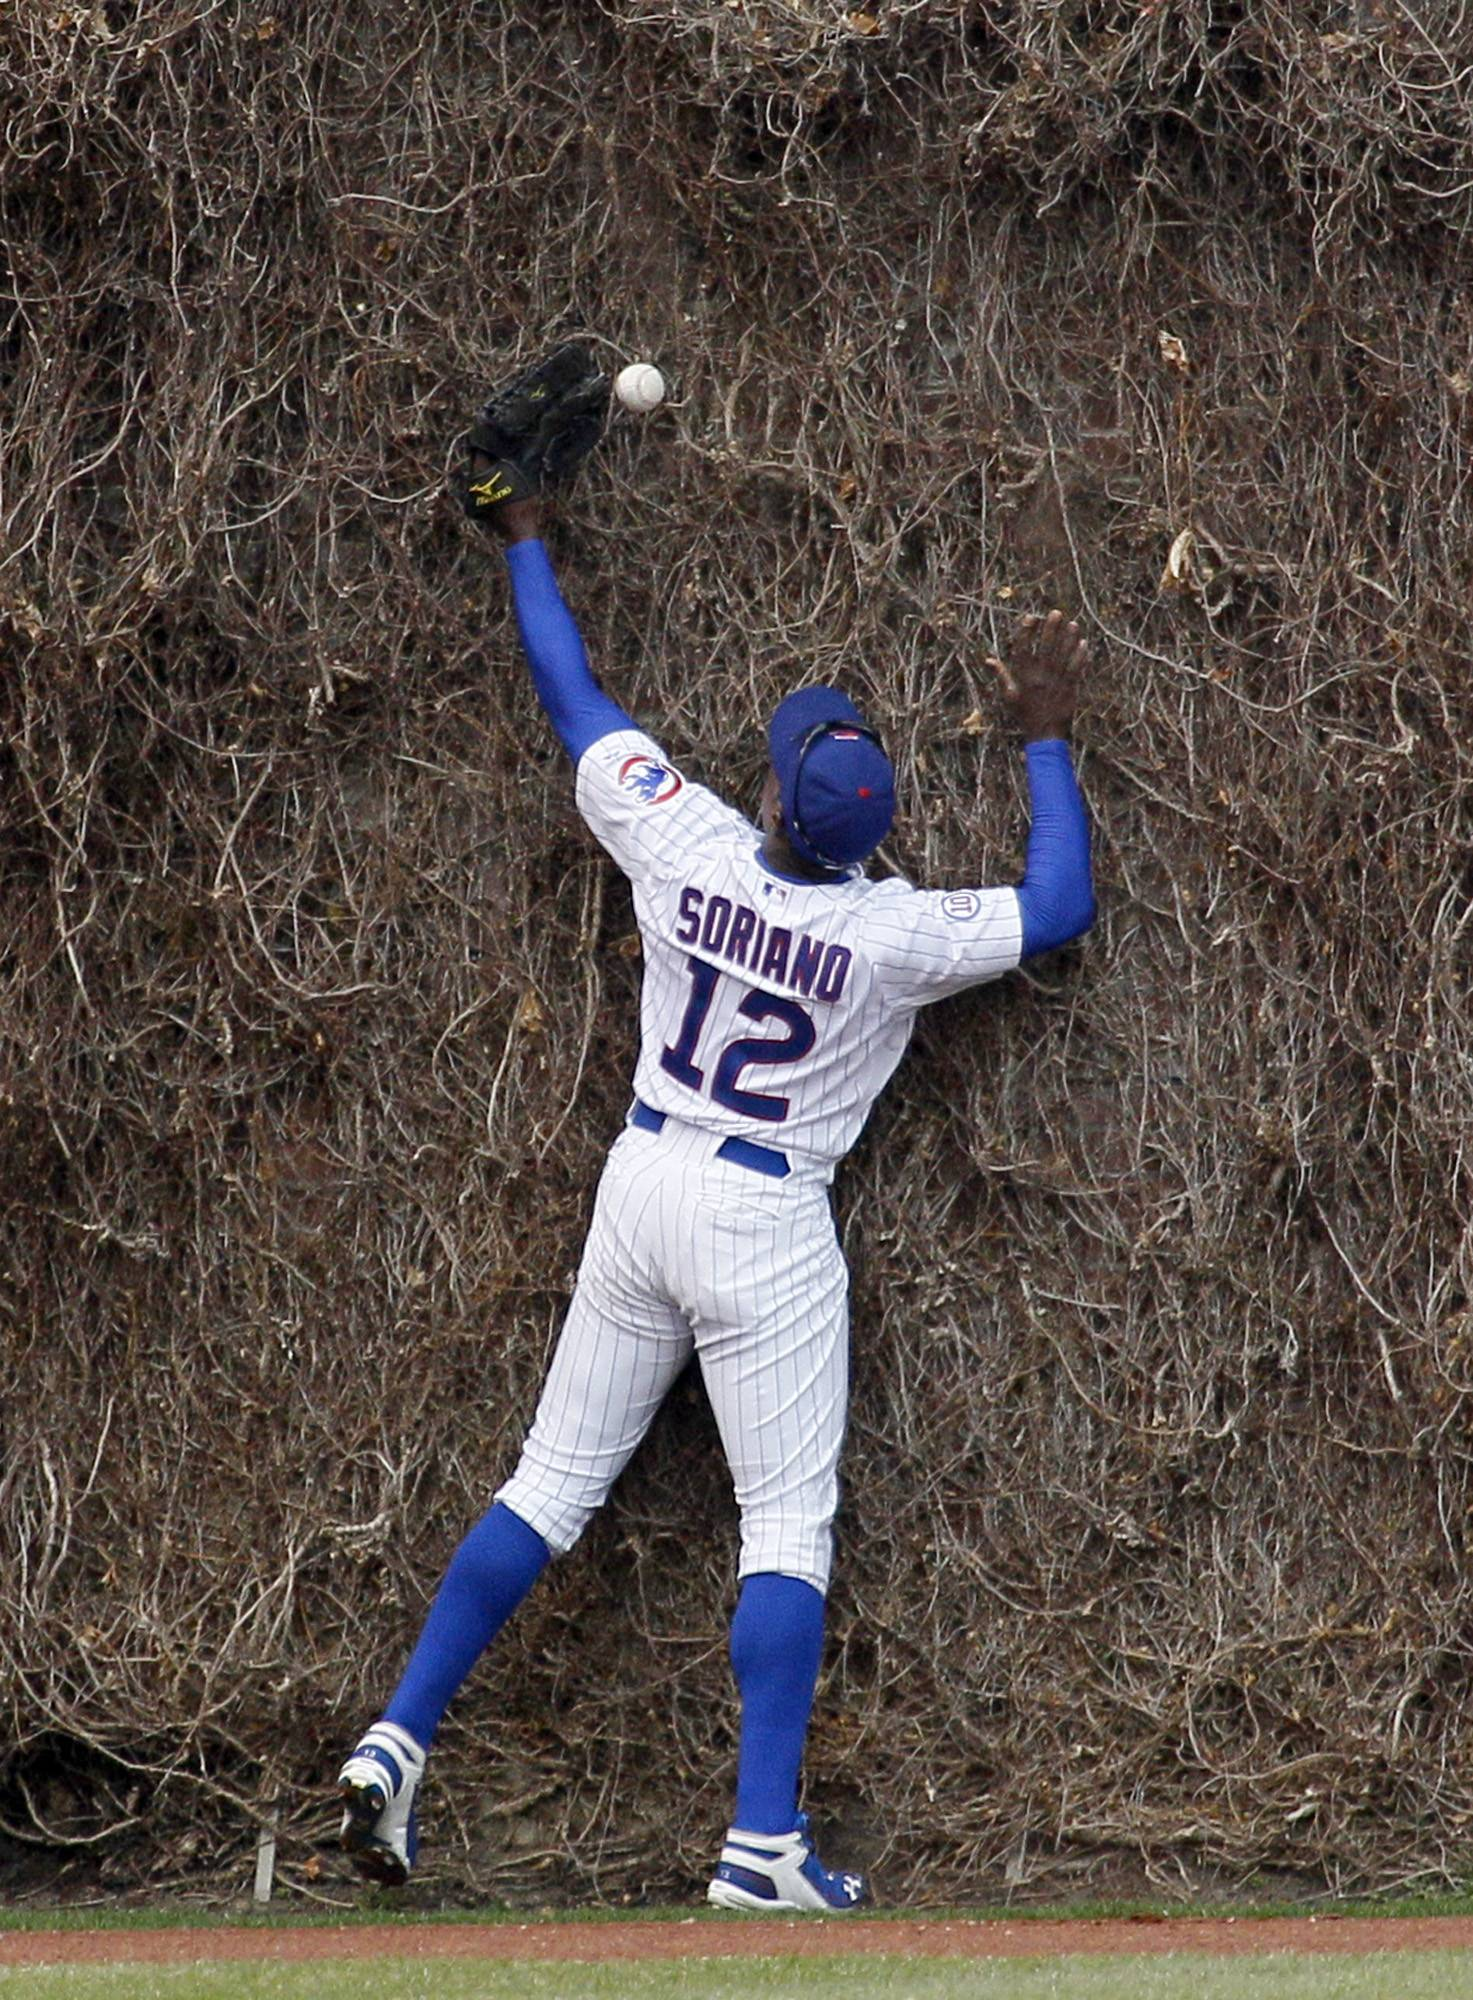 Cubs left fielder Alfonso Soriano is unable to catch a fly ball by Arizona Diamondbacks' Chris Young, allowing Willie Bloomquist to score from first, during the fifth inning Wednesday.